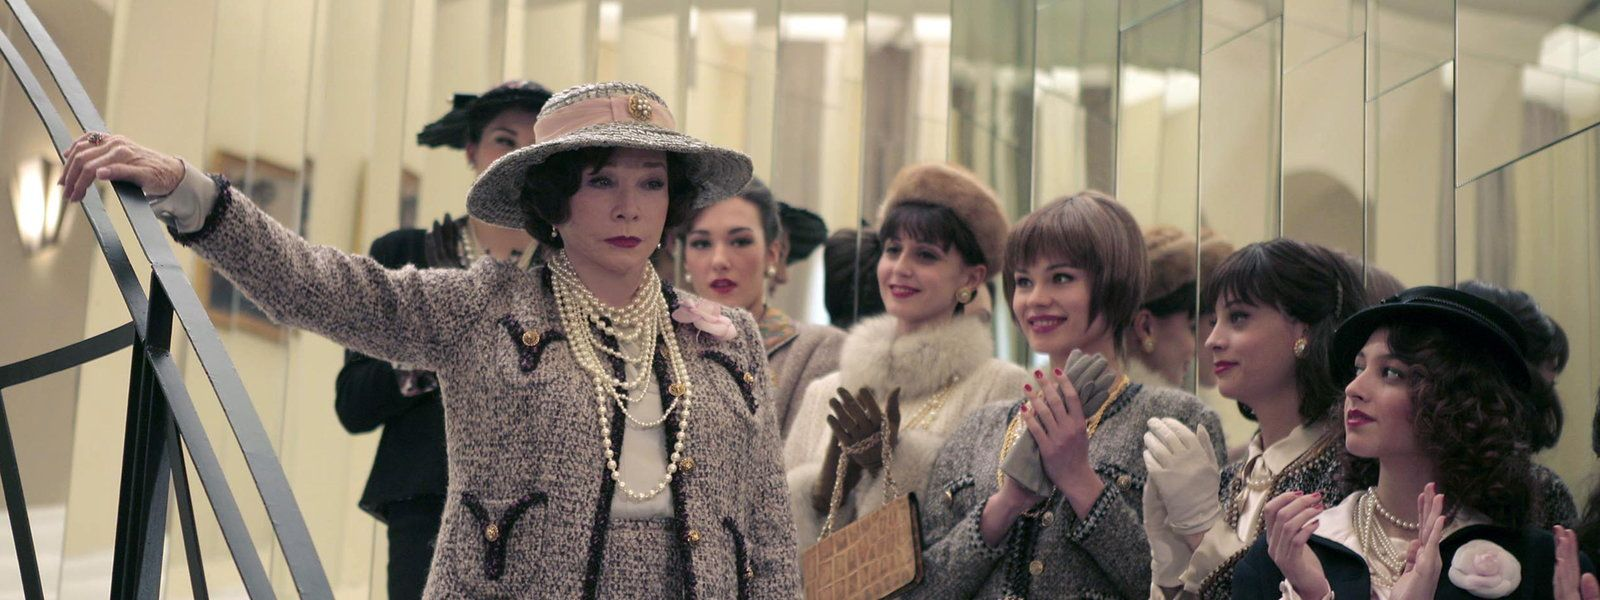 Coco chanel shirley maclane stars in this ragstoriches